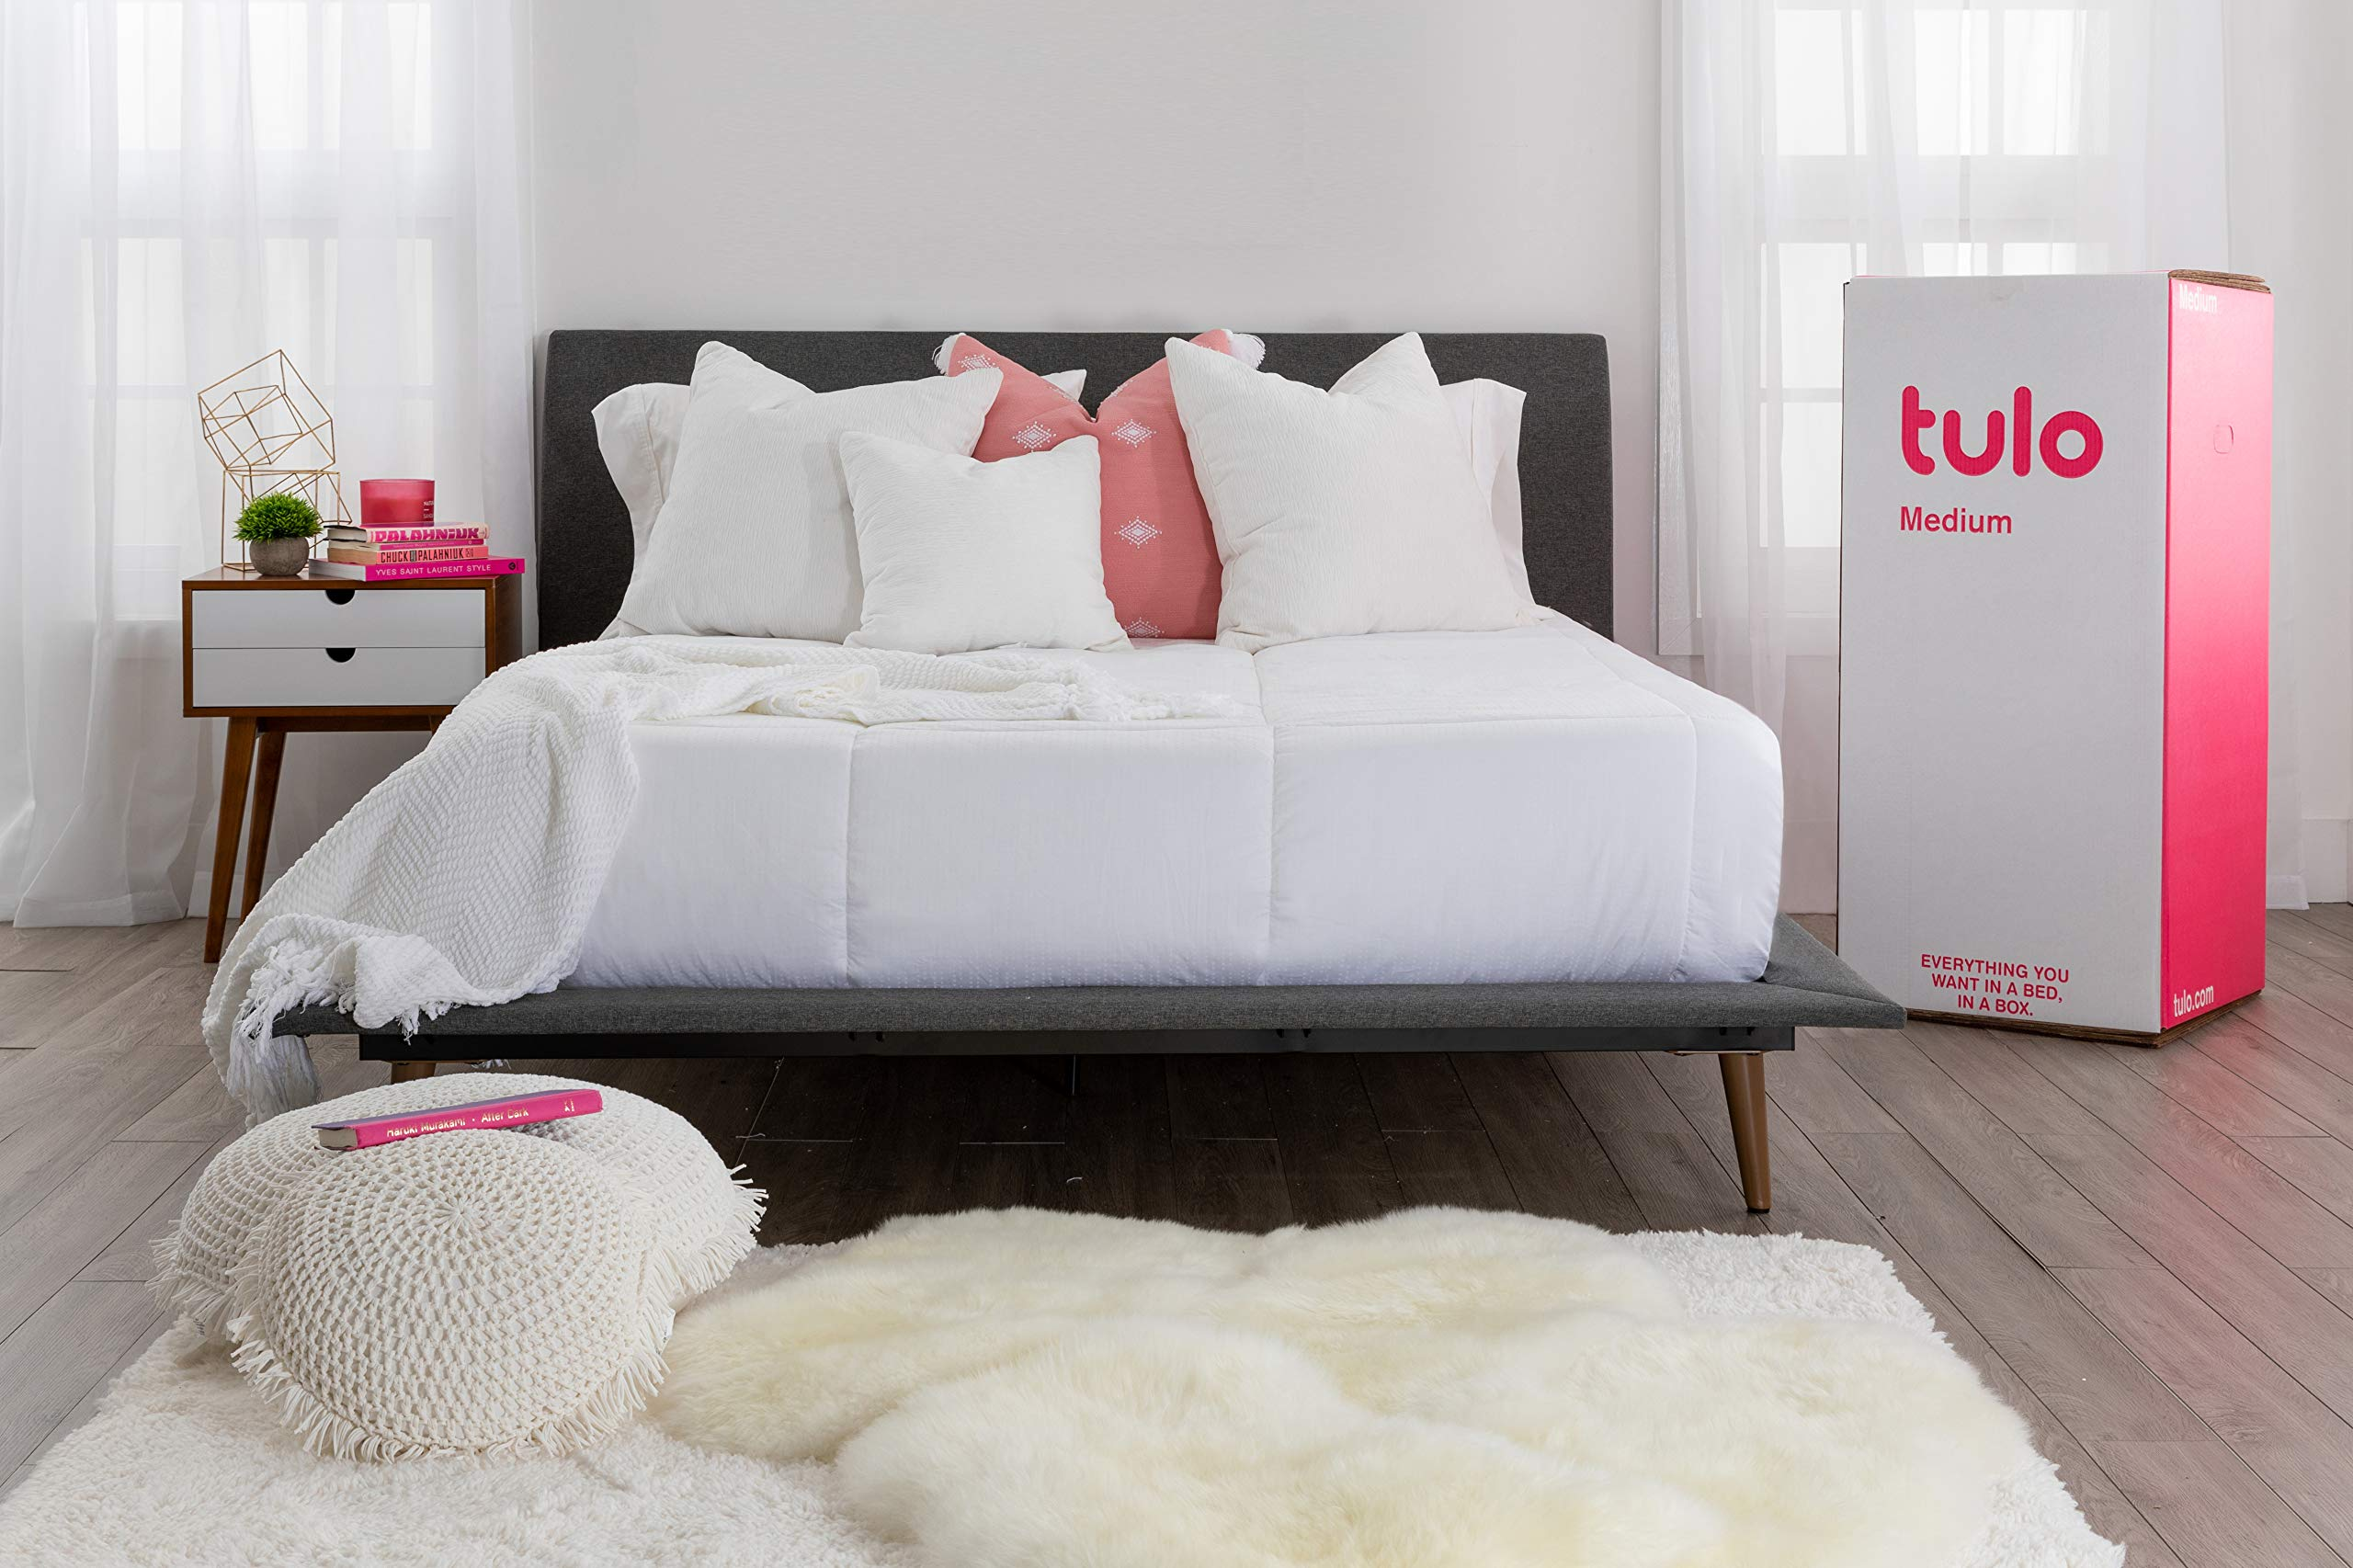 Mattress by tulo, Pick your Comfort Level, Medium Full Size 10 Inch Bed in a Box, Great for Sleep and Balance Between Soft and Firm by Tulo